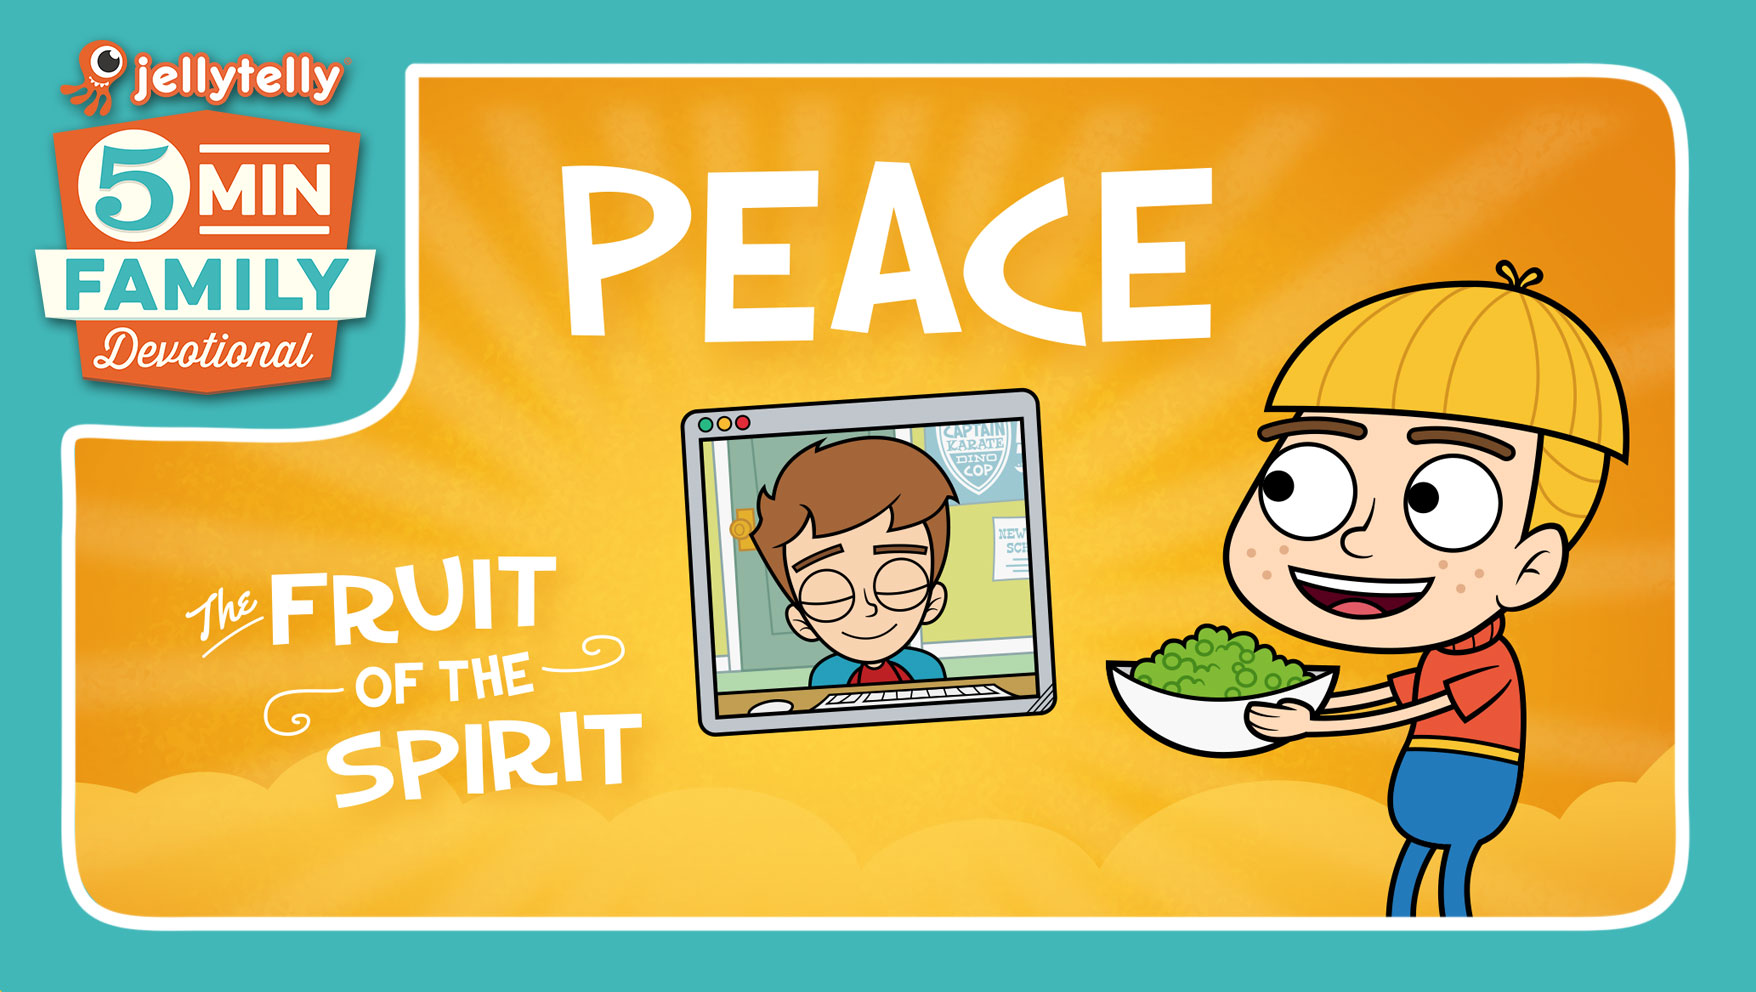 Peace - The Fruit of the Spirit 5 Minute Family Devotional